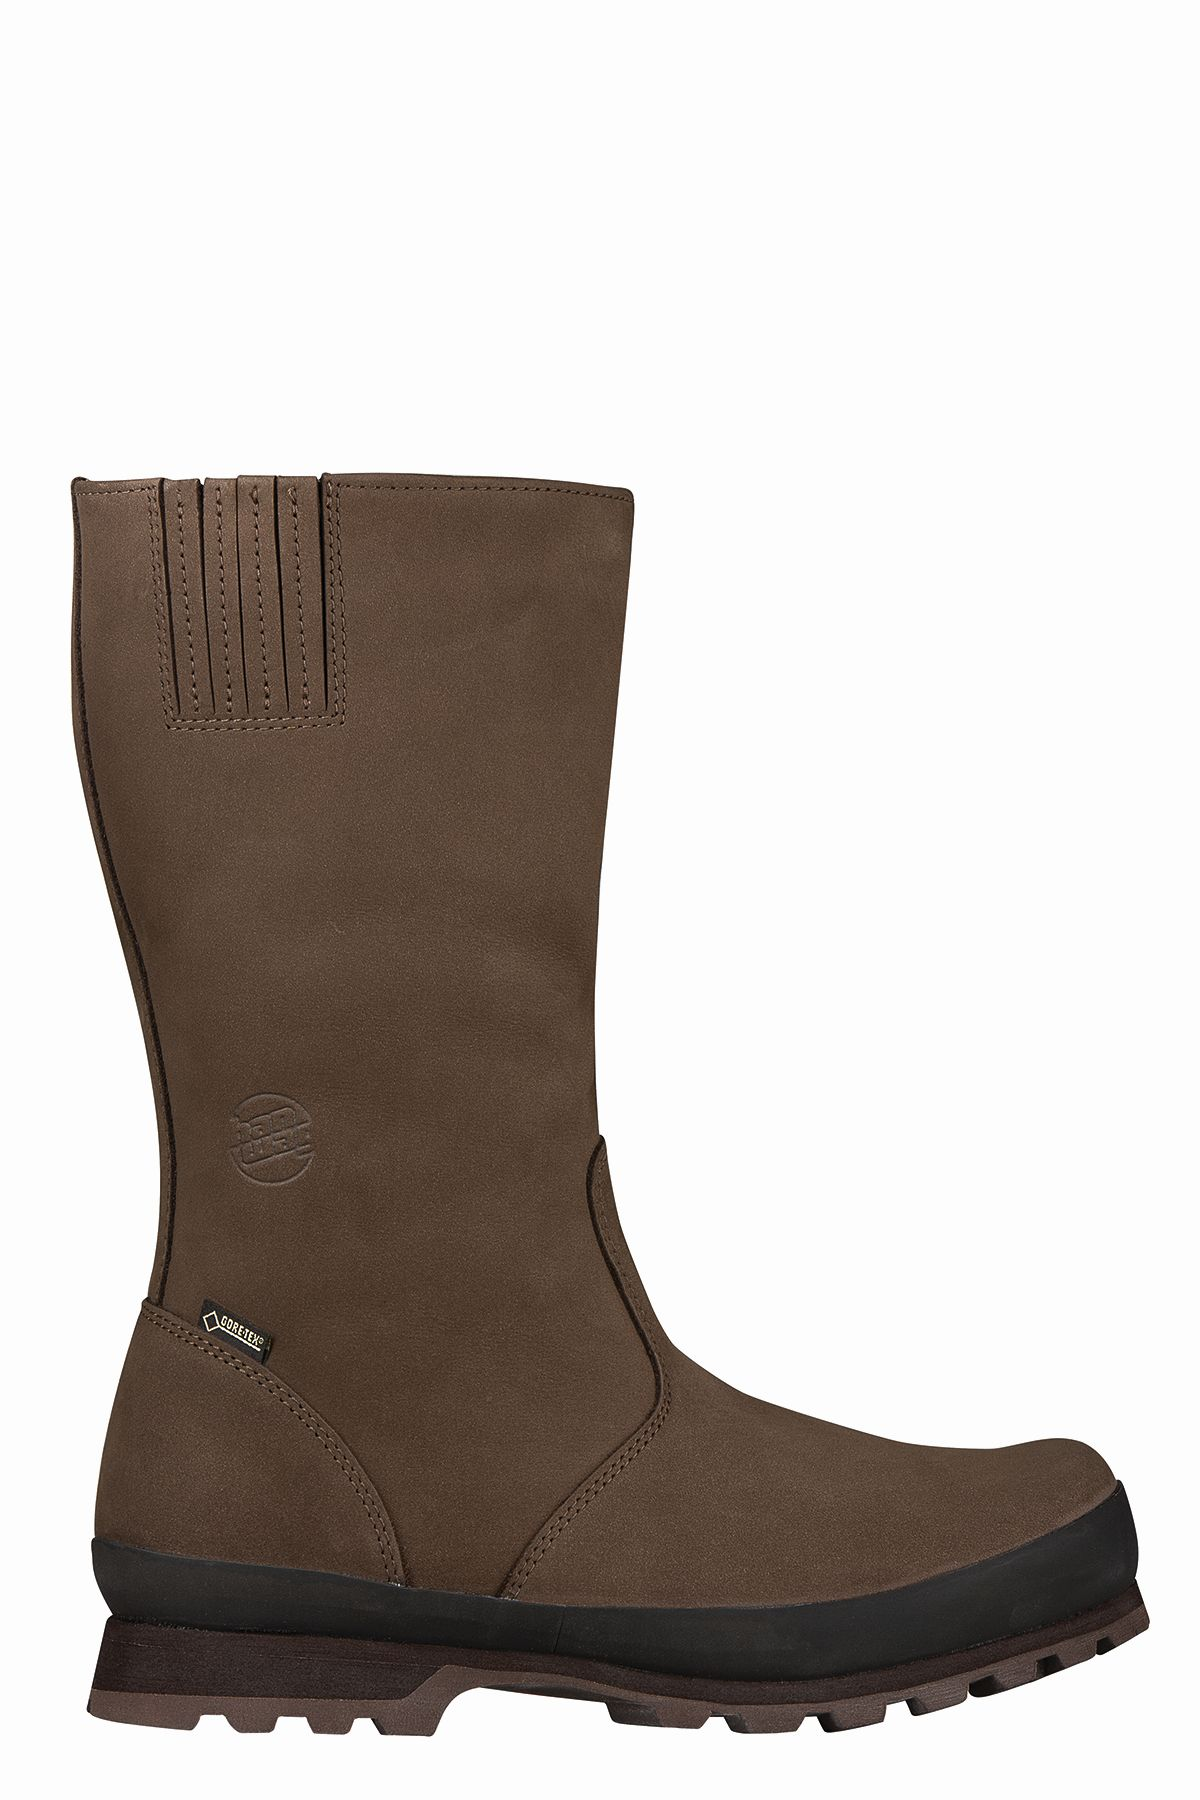 Hanwag Tannäs Bunion Lady GTX Brown – Erde-30